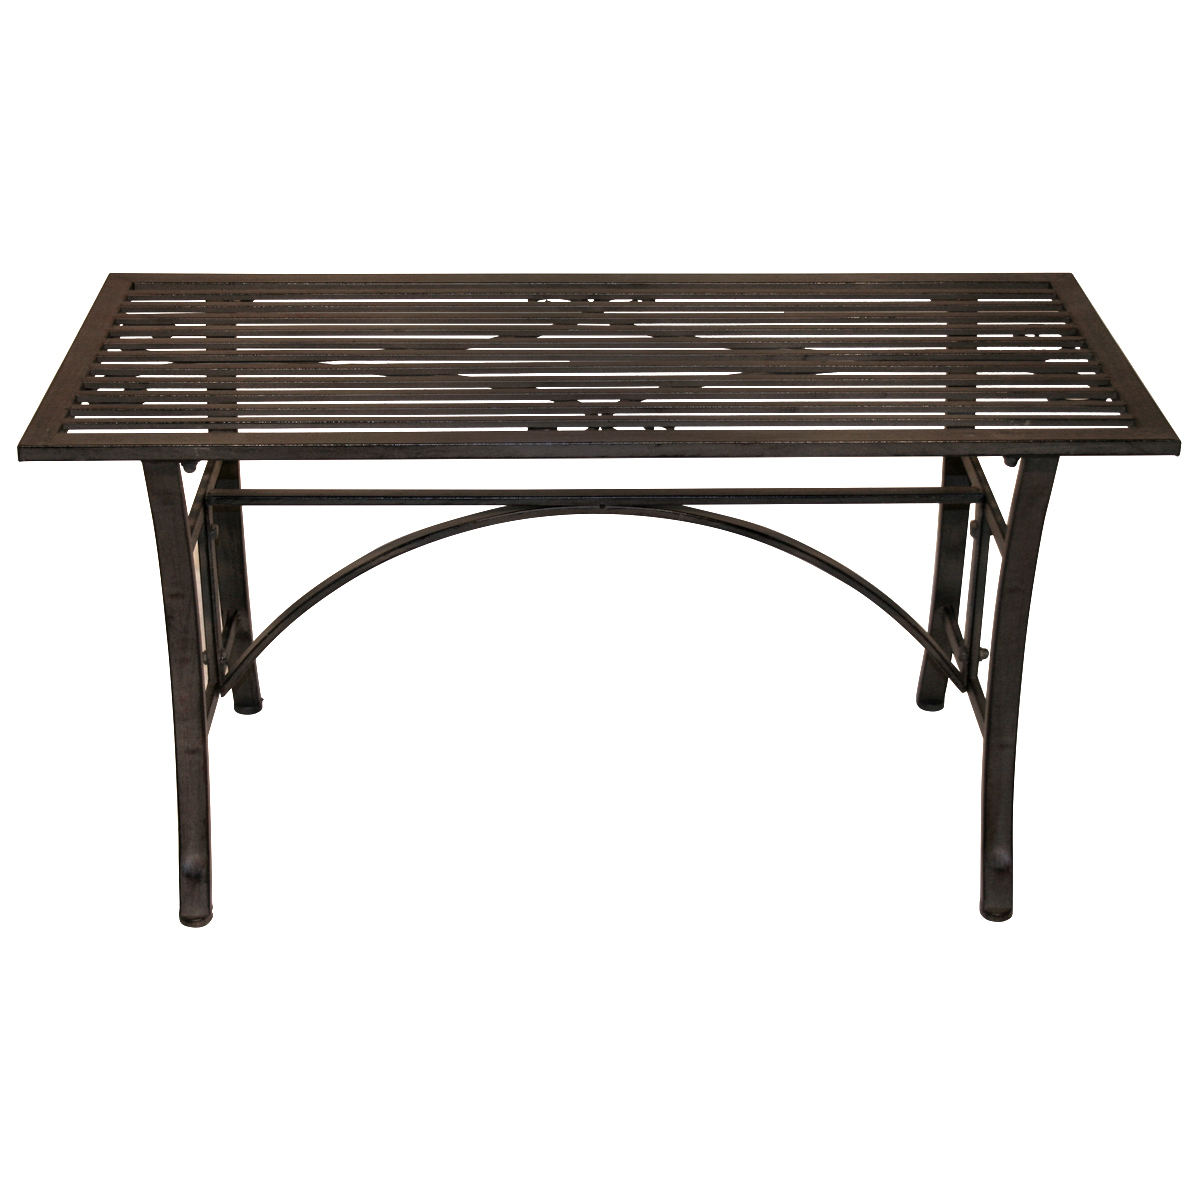 Charles Bentley Wrought Iron Coffee Table Outdoor Patio Garden Metal Table Grey Ebay